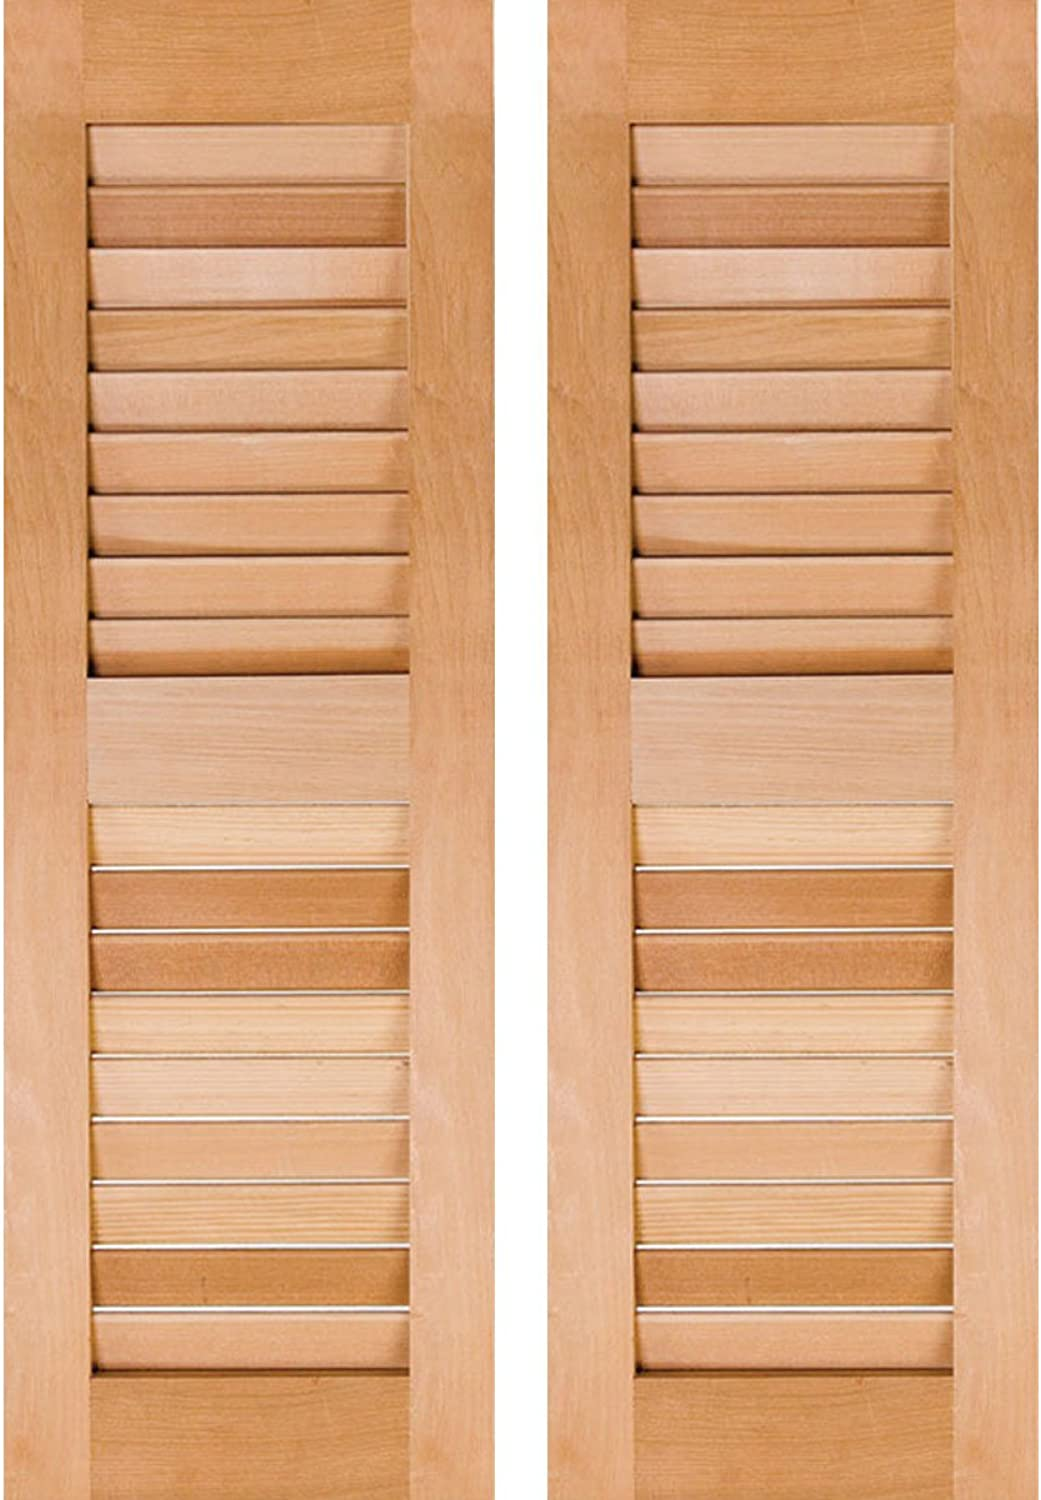 Ekena Millwork RWL12X025UNP Exterior Real Wood Pine Open Louvered Shutters (Per Pair), 12  x 25 , Unfinished